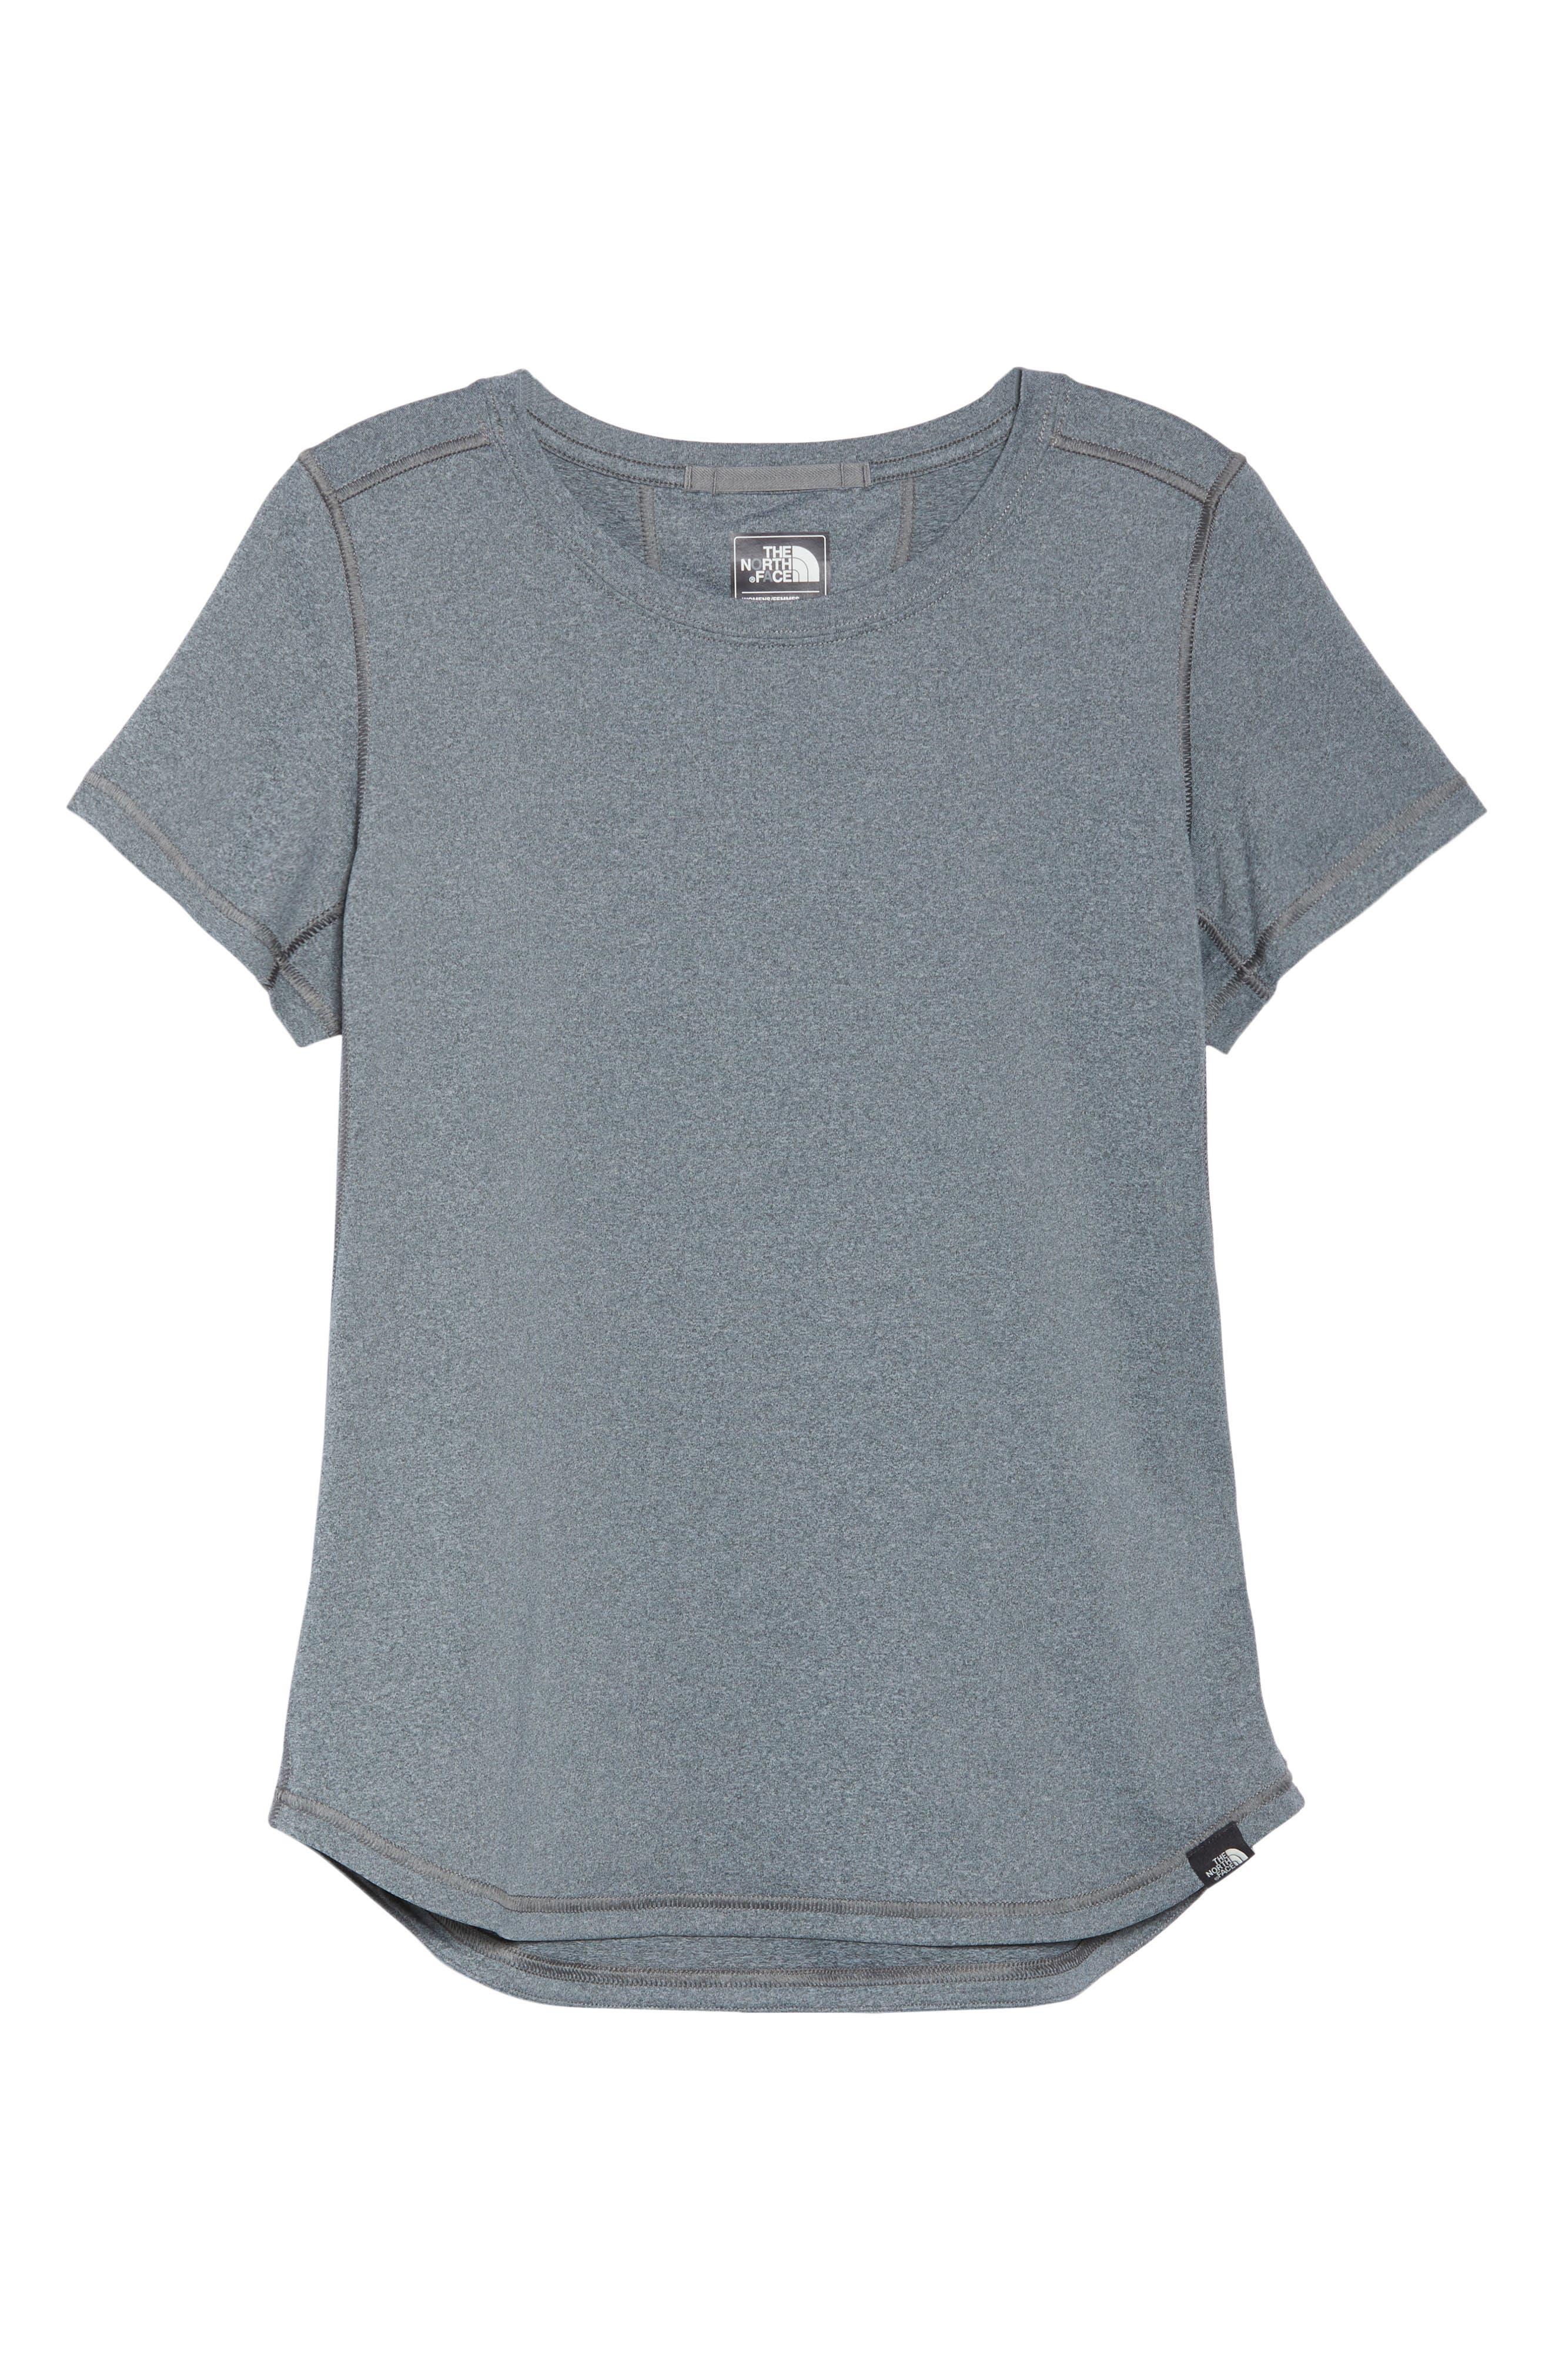 THE NORTH FACE,                             Shade Me Shirt,                             Alternate thumbnail 7, color,                             030